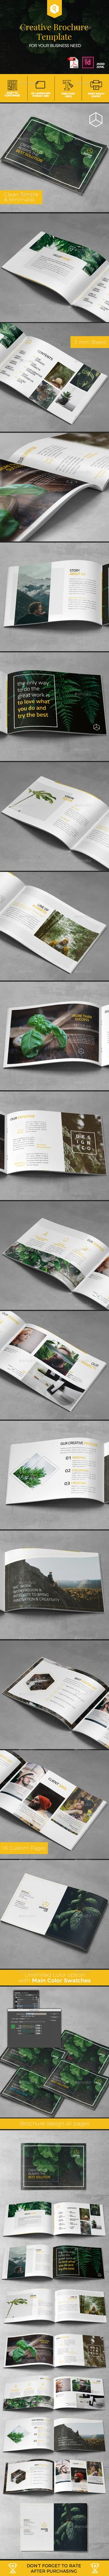 A5 Creative Brochure Template - Corporate Brochures Download here : https://graphicriver.net/item/a5-creative-brochure-template/19676664?s_rank=50&ref=Al-fatih